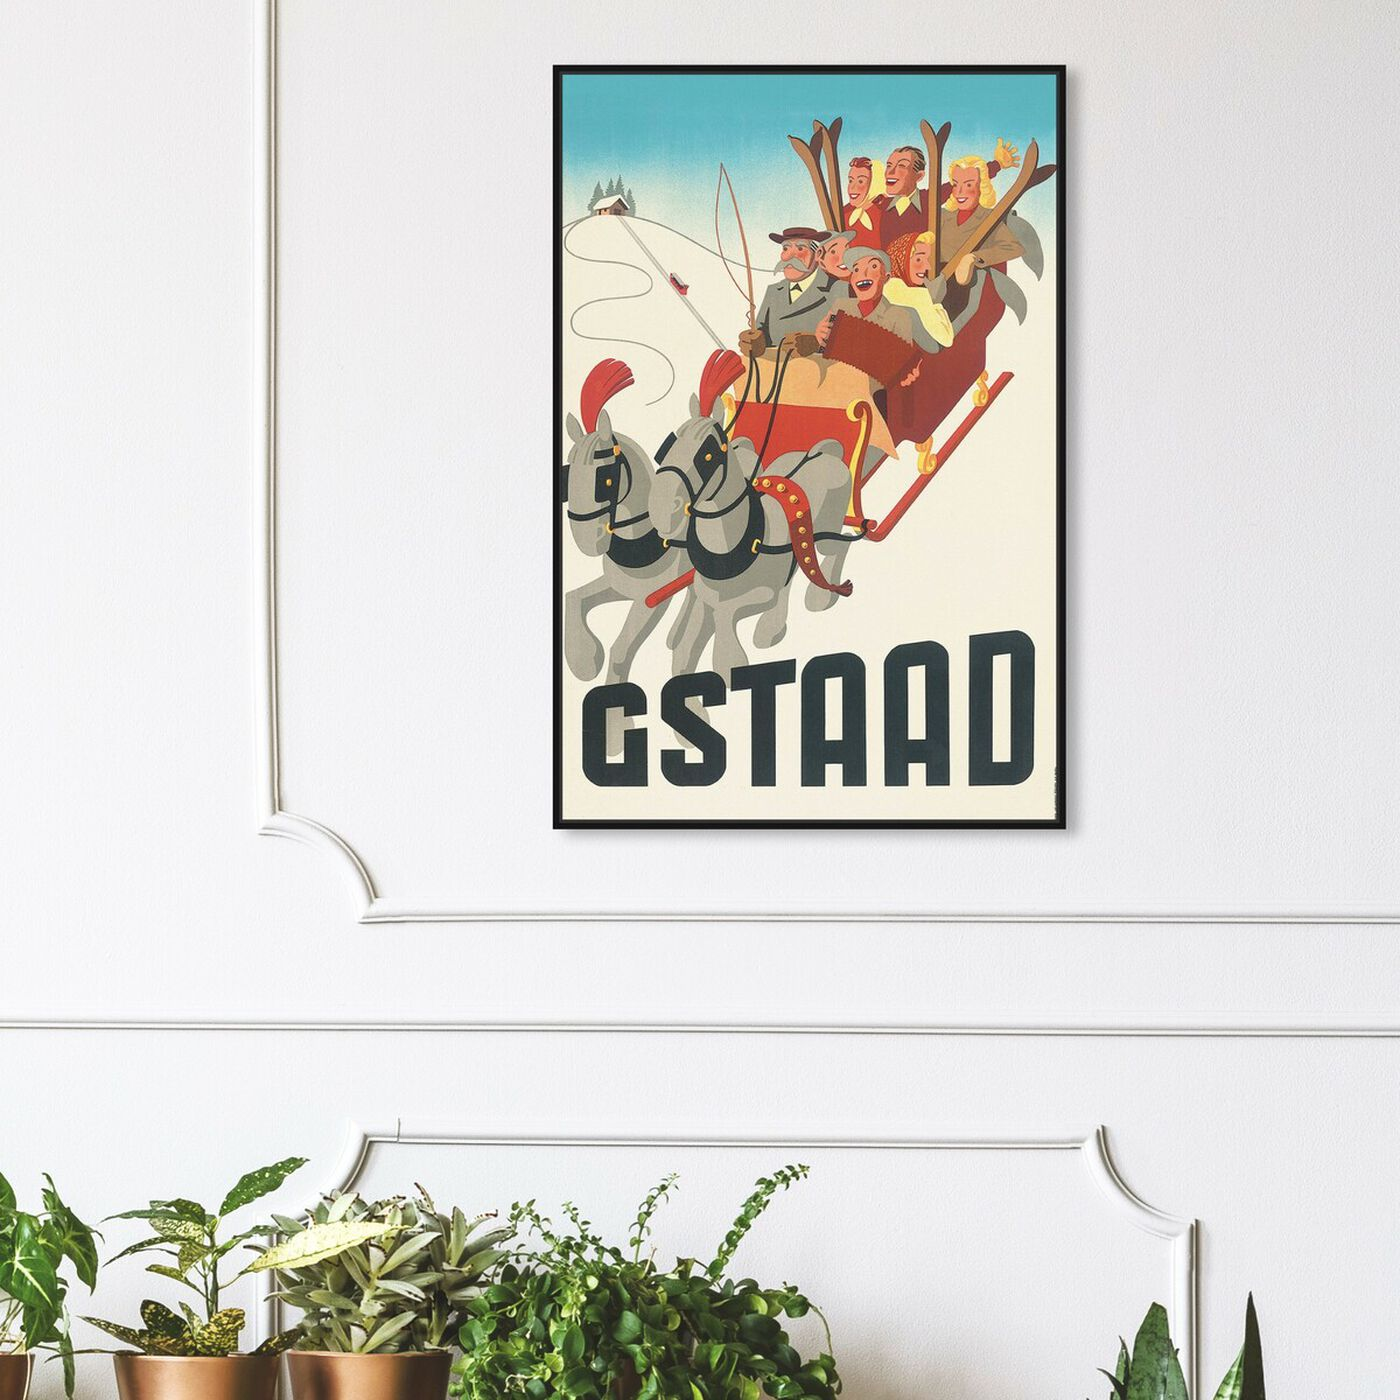 Hanging view of Gstaad featuring advertising and posters art.